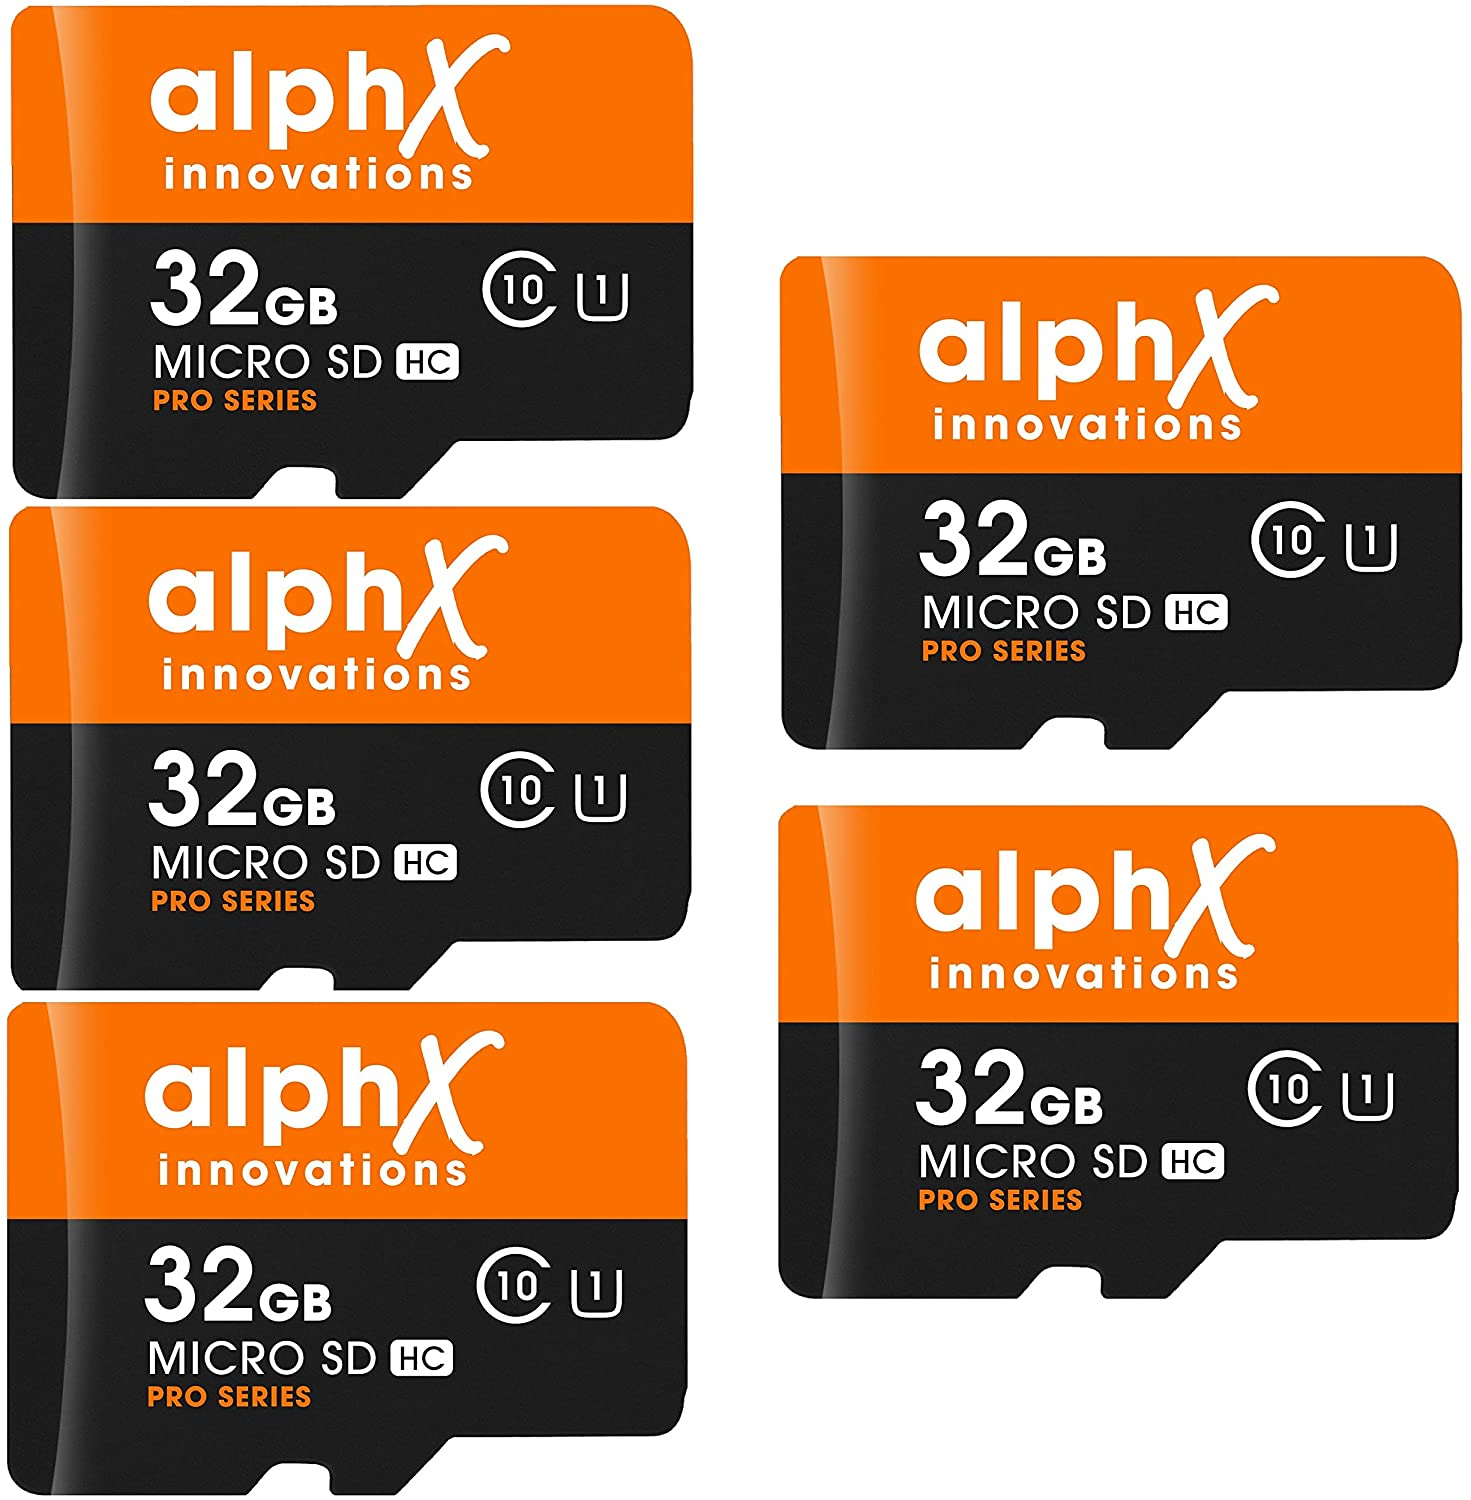 5 Pack AlphX 32gb Micro SD High Speed Class 10 Memory Cards for Samsung Galaxy S9, S9+, S8, Note 8, S7, S5, S4 with Transfer Speed up to 80MB/s